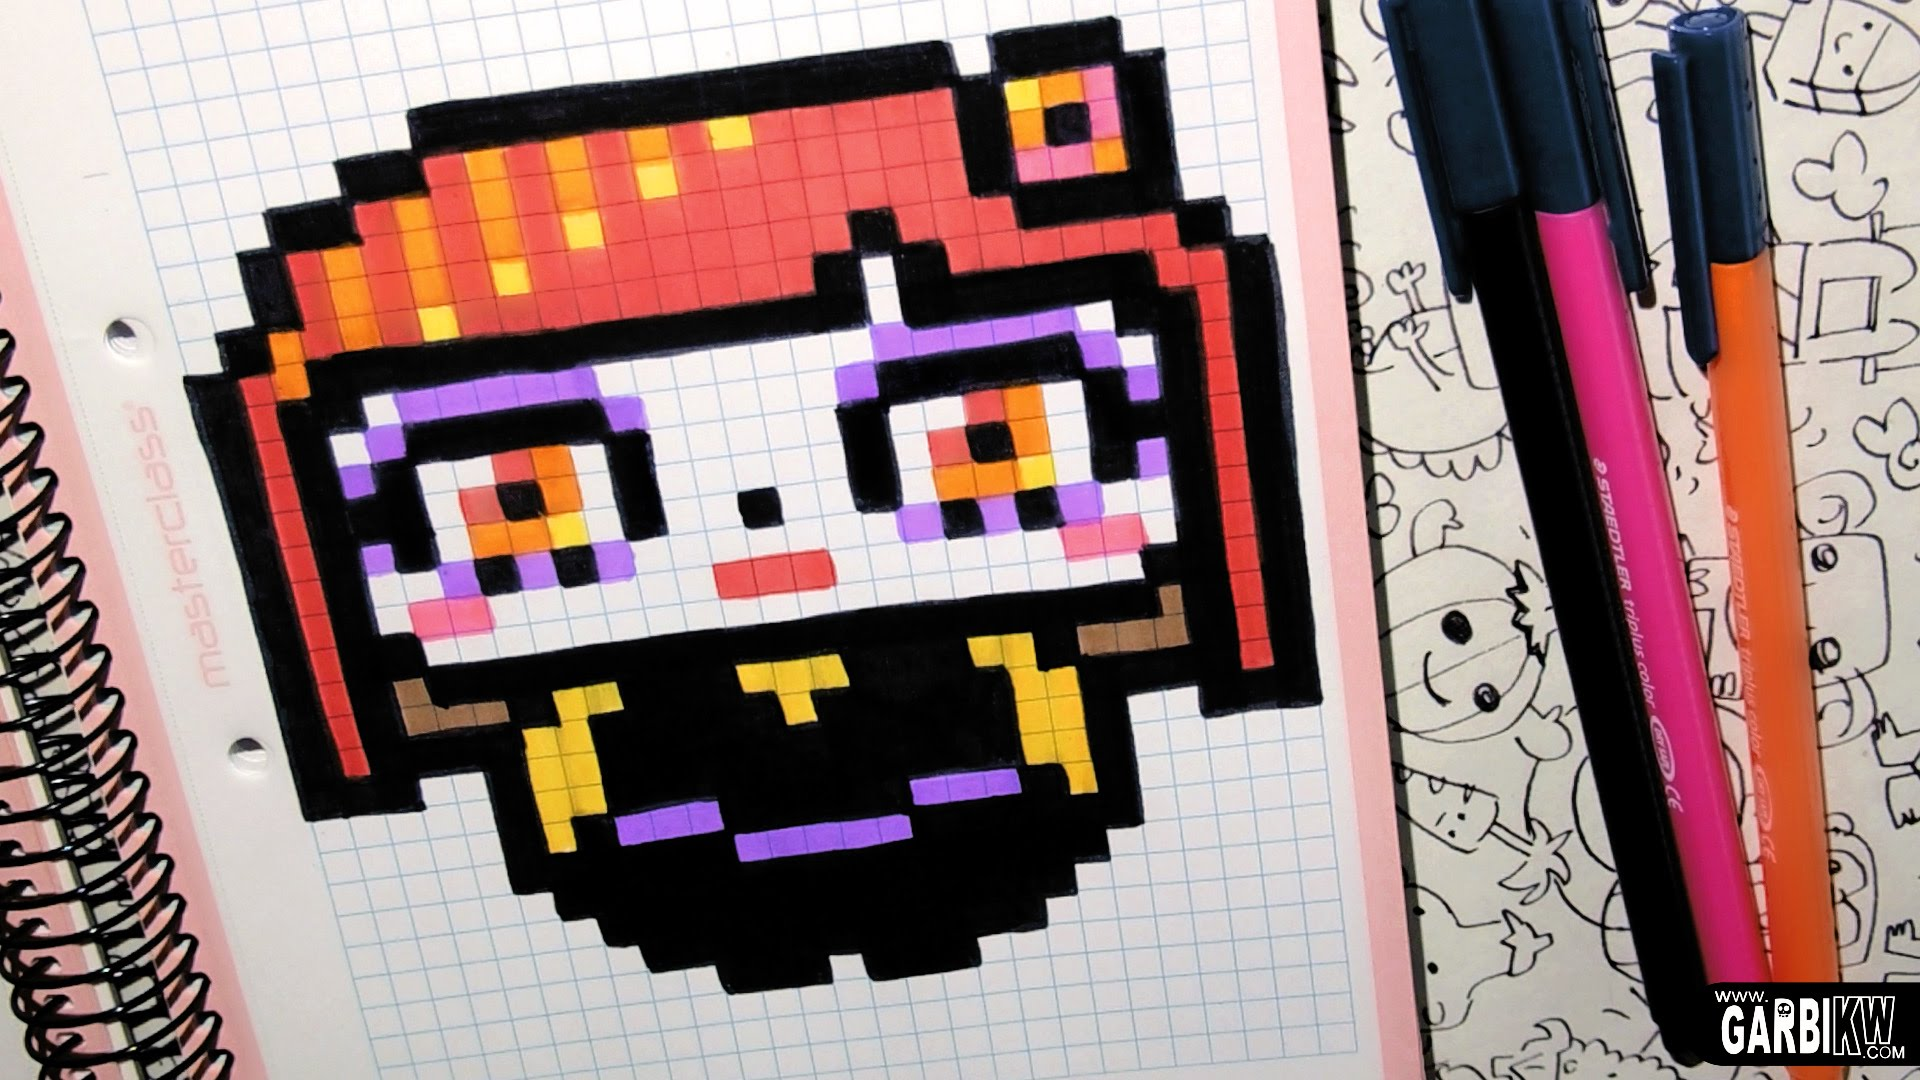 Drawn pixel art garbi kw By Art Skull To Sugar